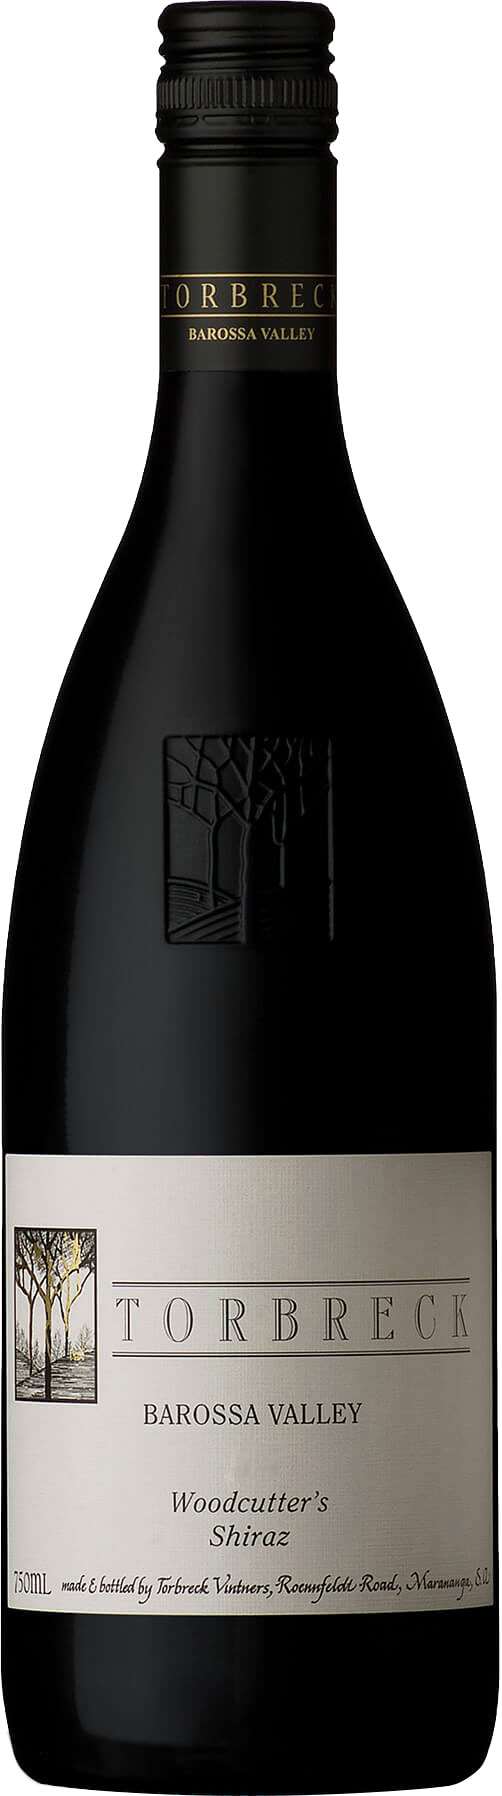 Torbreck - Woodcutters Shiraz 2016 12x 75cl Bottles